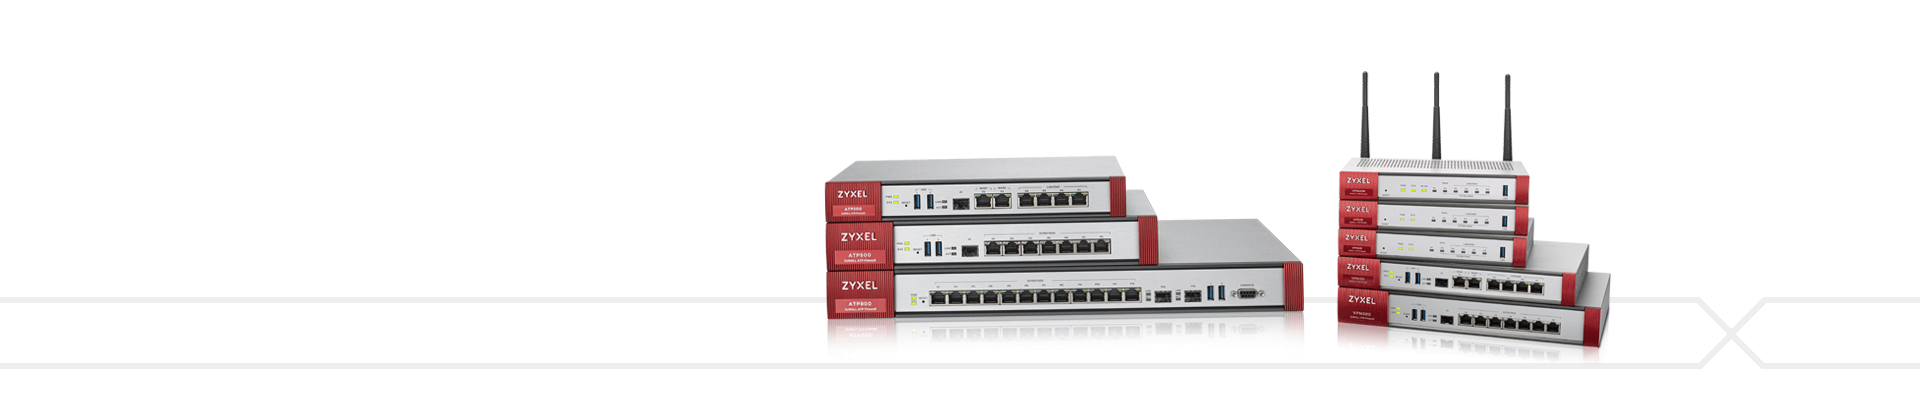 Zyxel Security Firewalls for Business